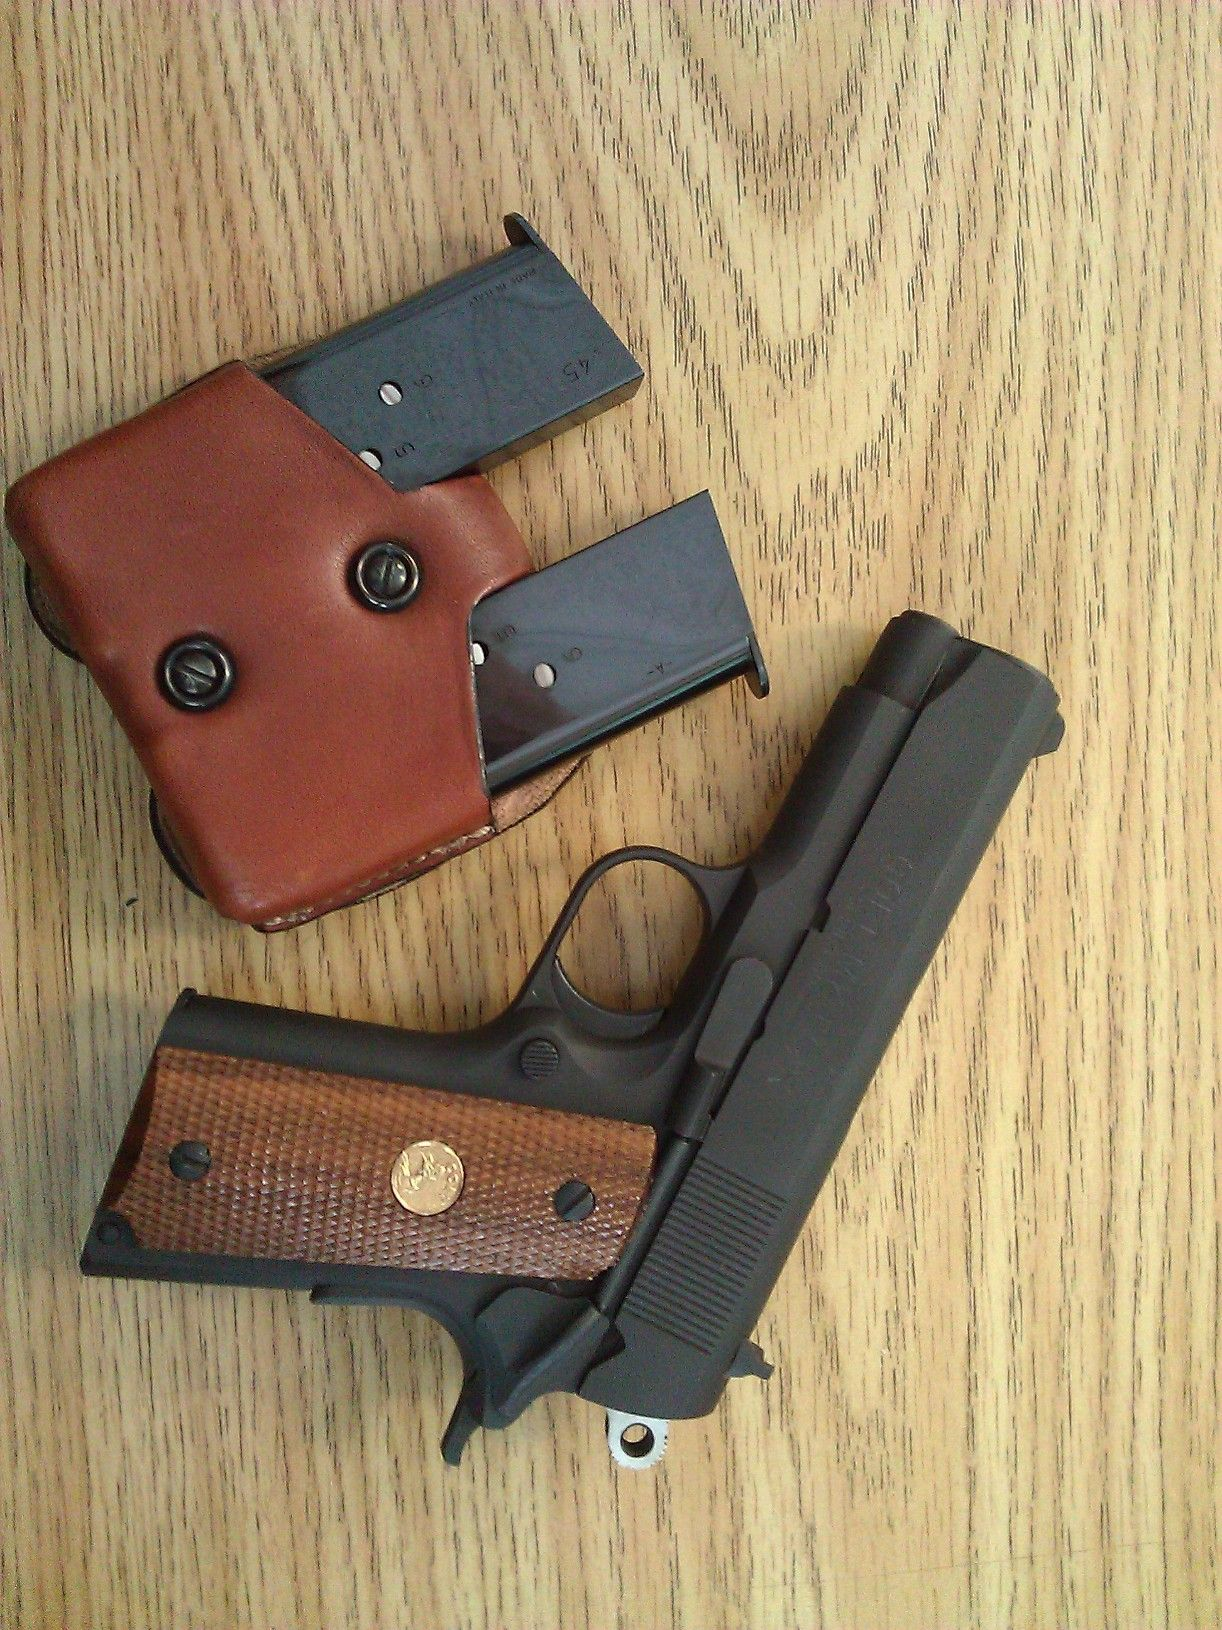 Colt 1911 .45 Officers ACP mk IV. One of my favorite carry pistols.